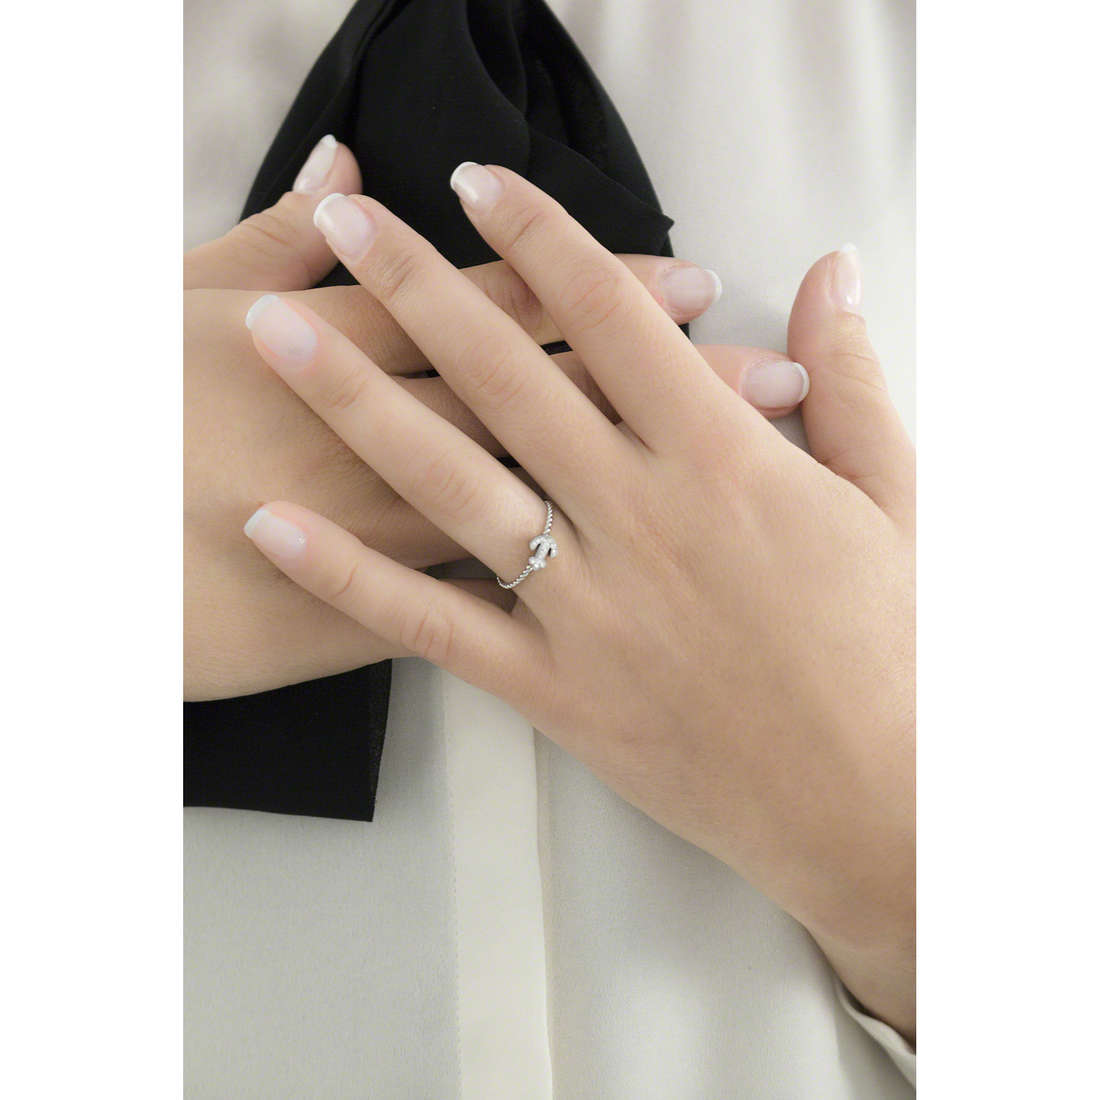 Marlù rings Time To woman 18AN027-S indosso